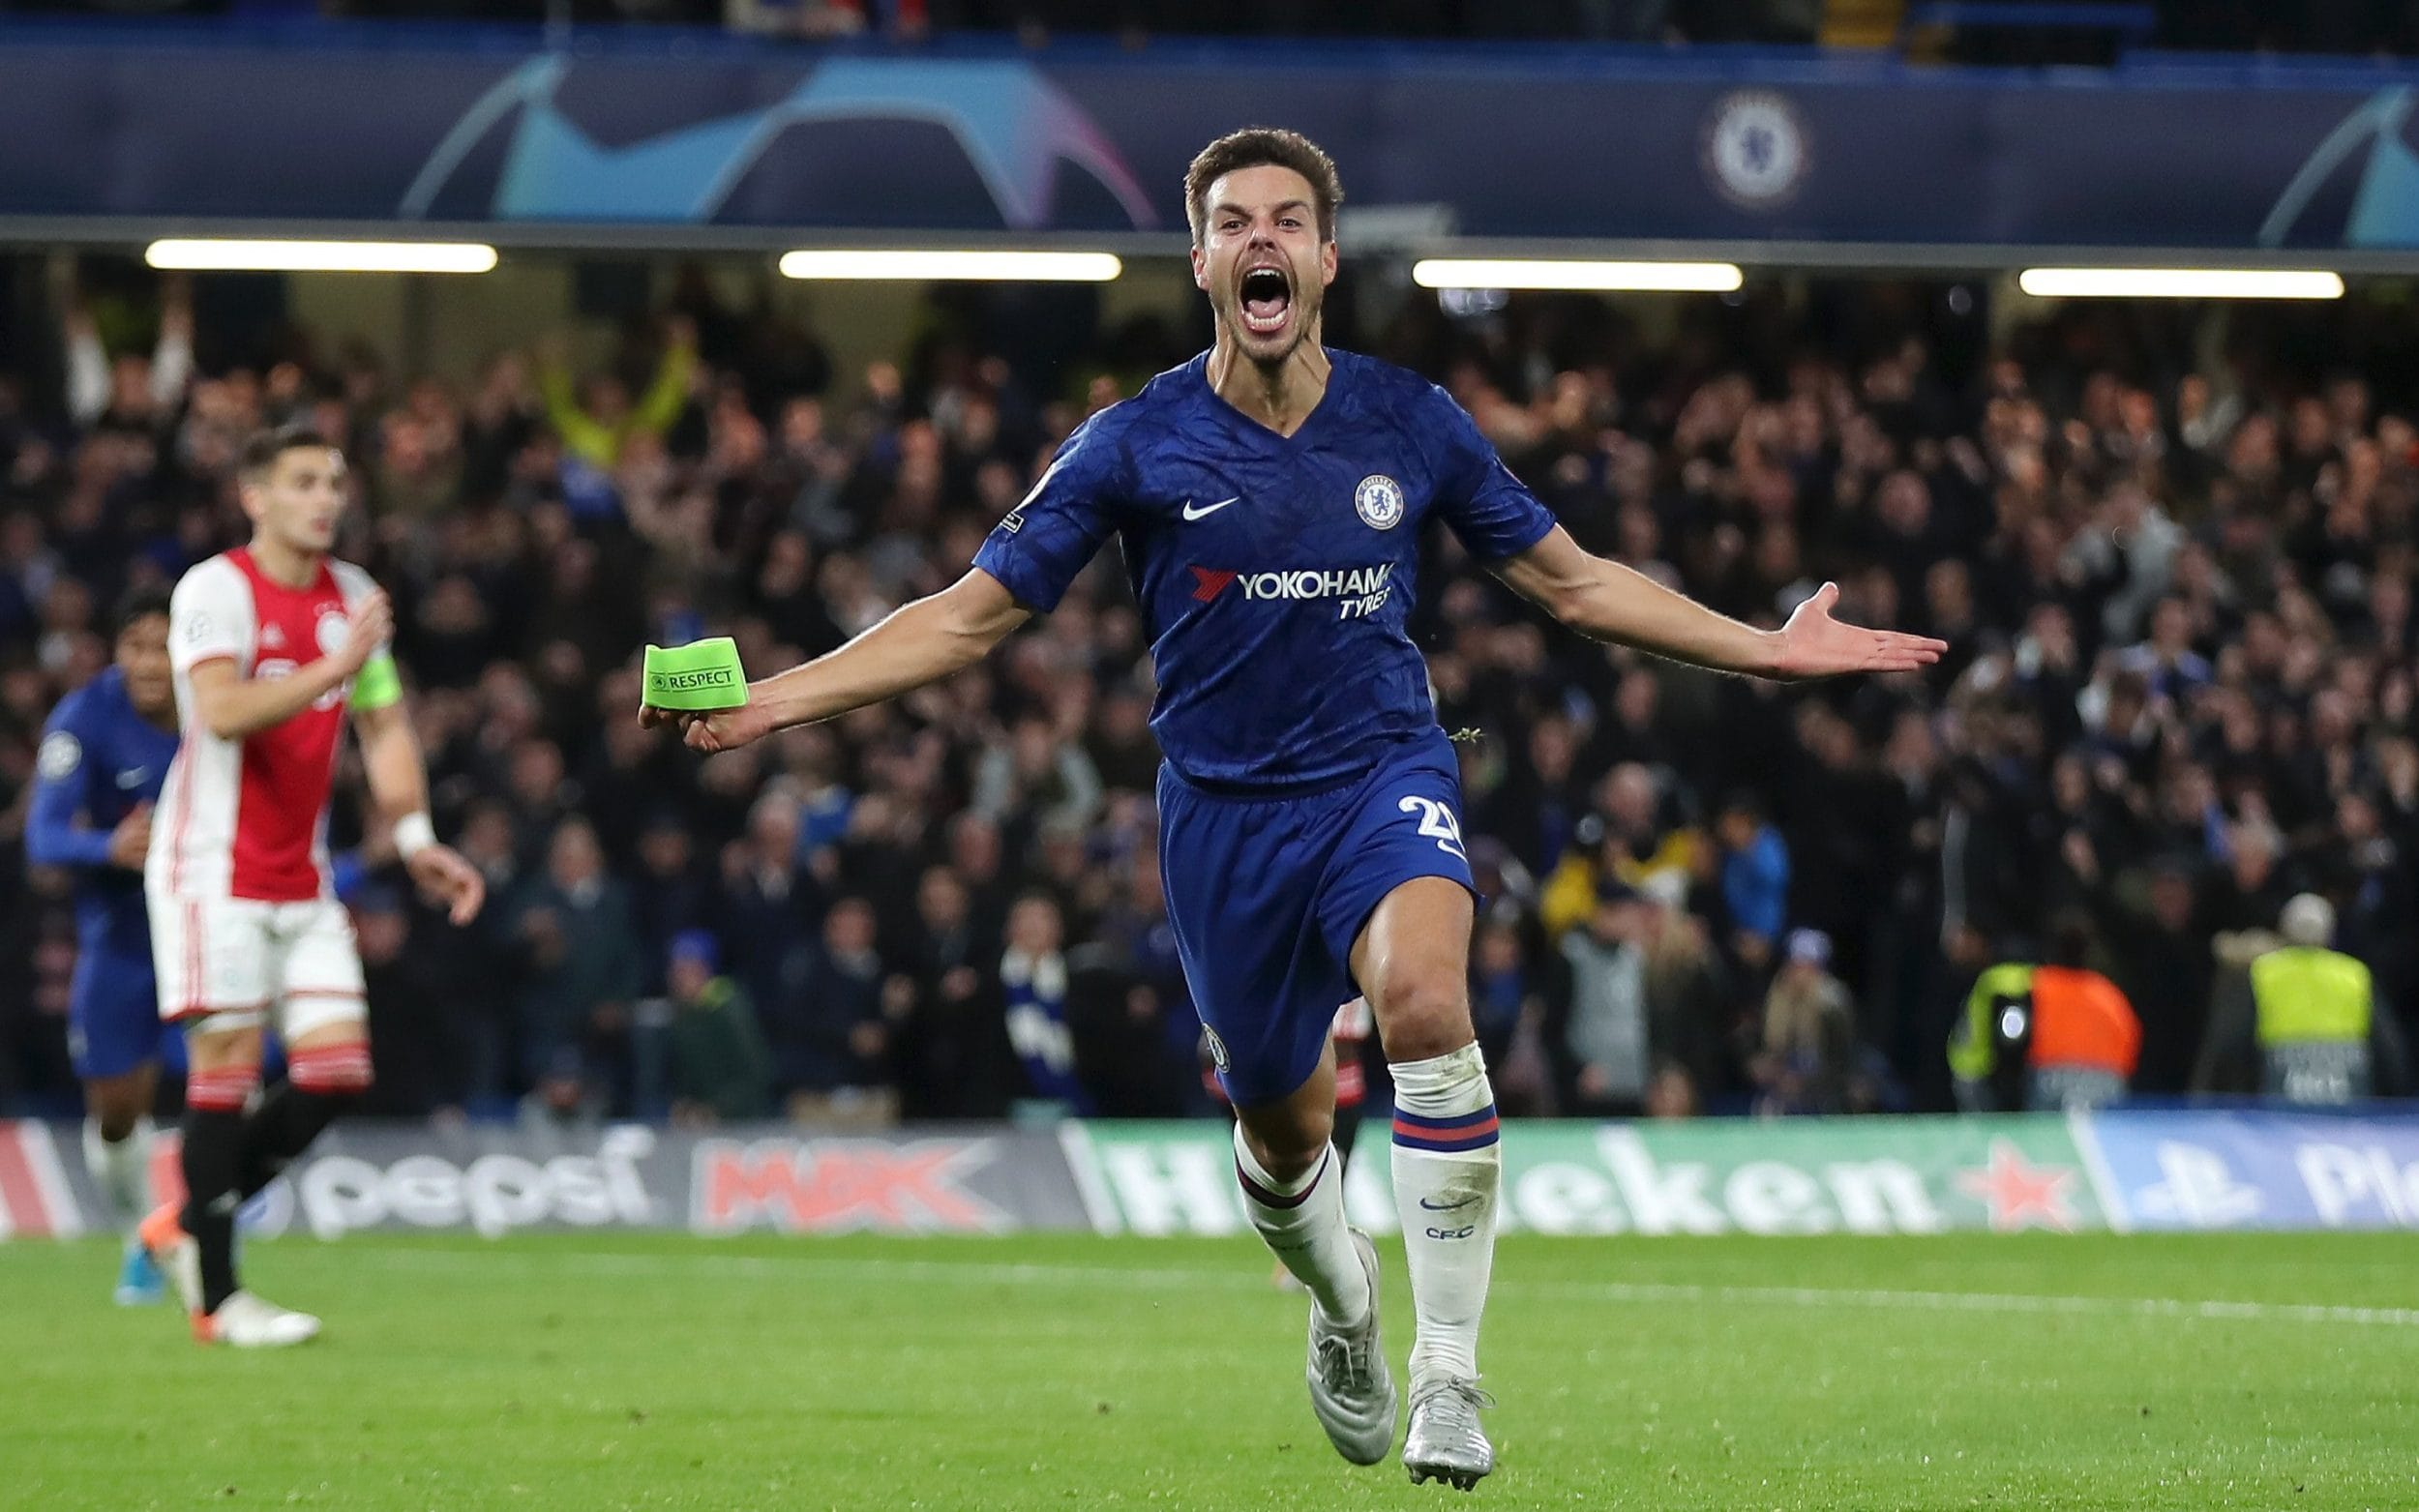 Cesar Azpilicueta of Chelsea celebrates after scoring his team's fifth goal which is later disallowed during the UEFA Champions League group H match between Chelsea FC and AFC Ajax